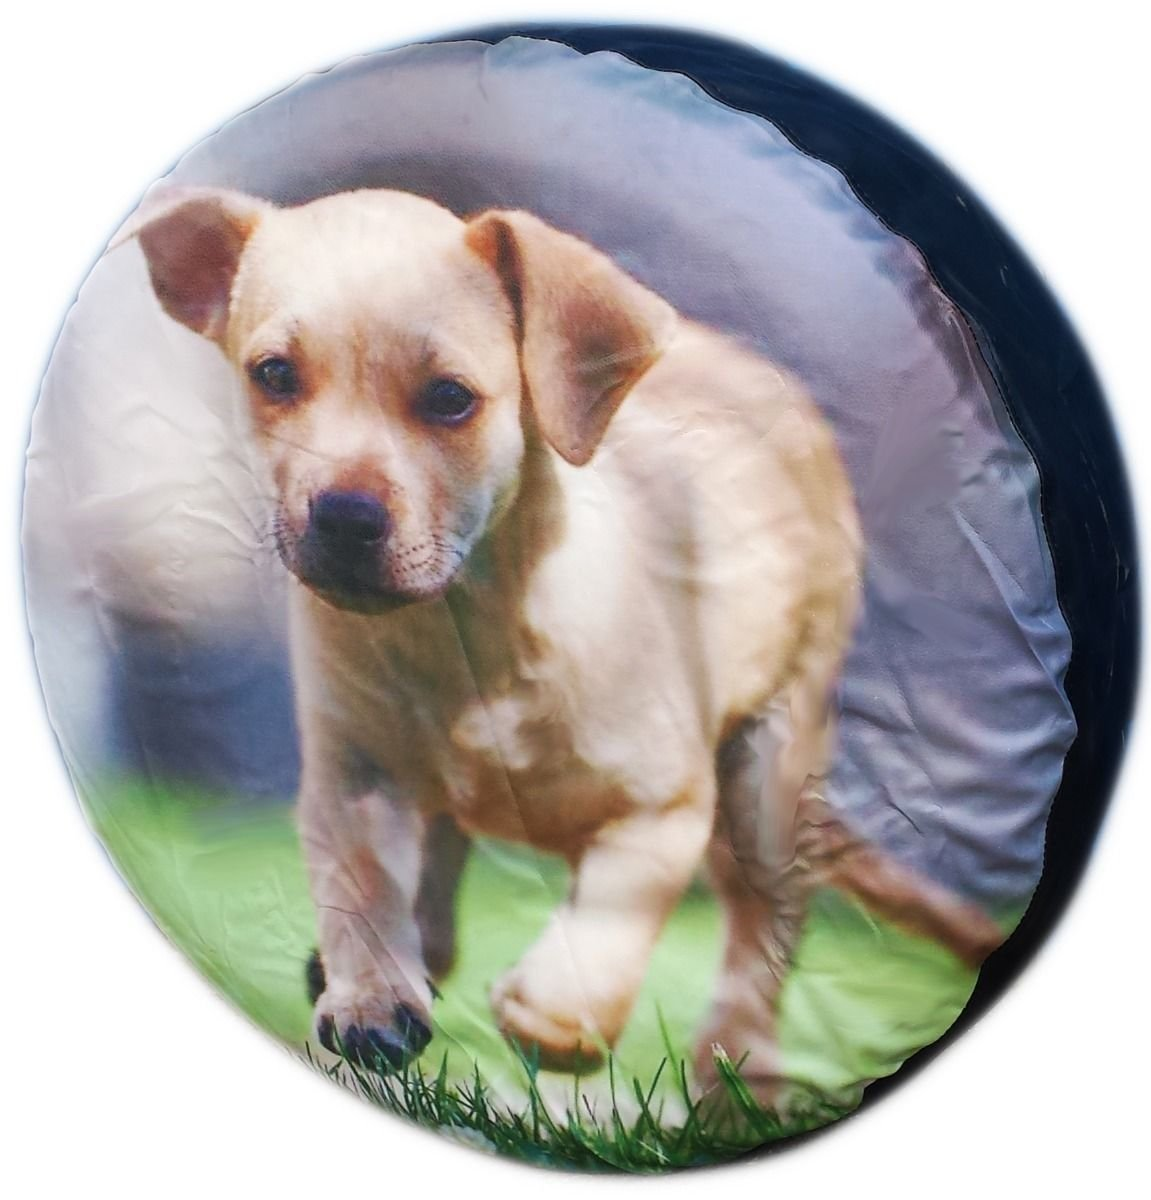 WHEEL COVER WHEELCOVER SPARE TYRE TIRE 4X4 DOG FOR ALL SIZES - LET US KNOW YOUR SIZE BargainworldUK